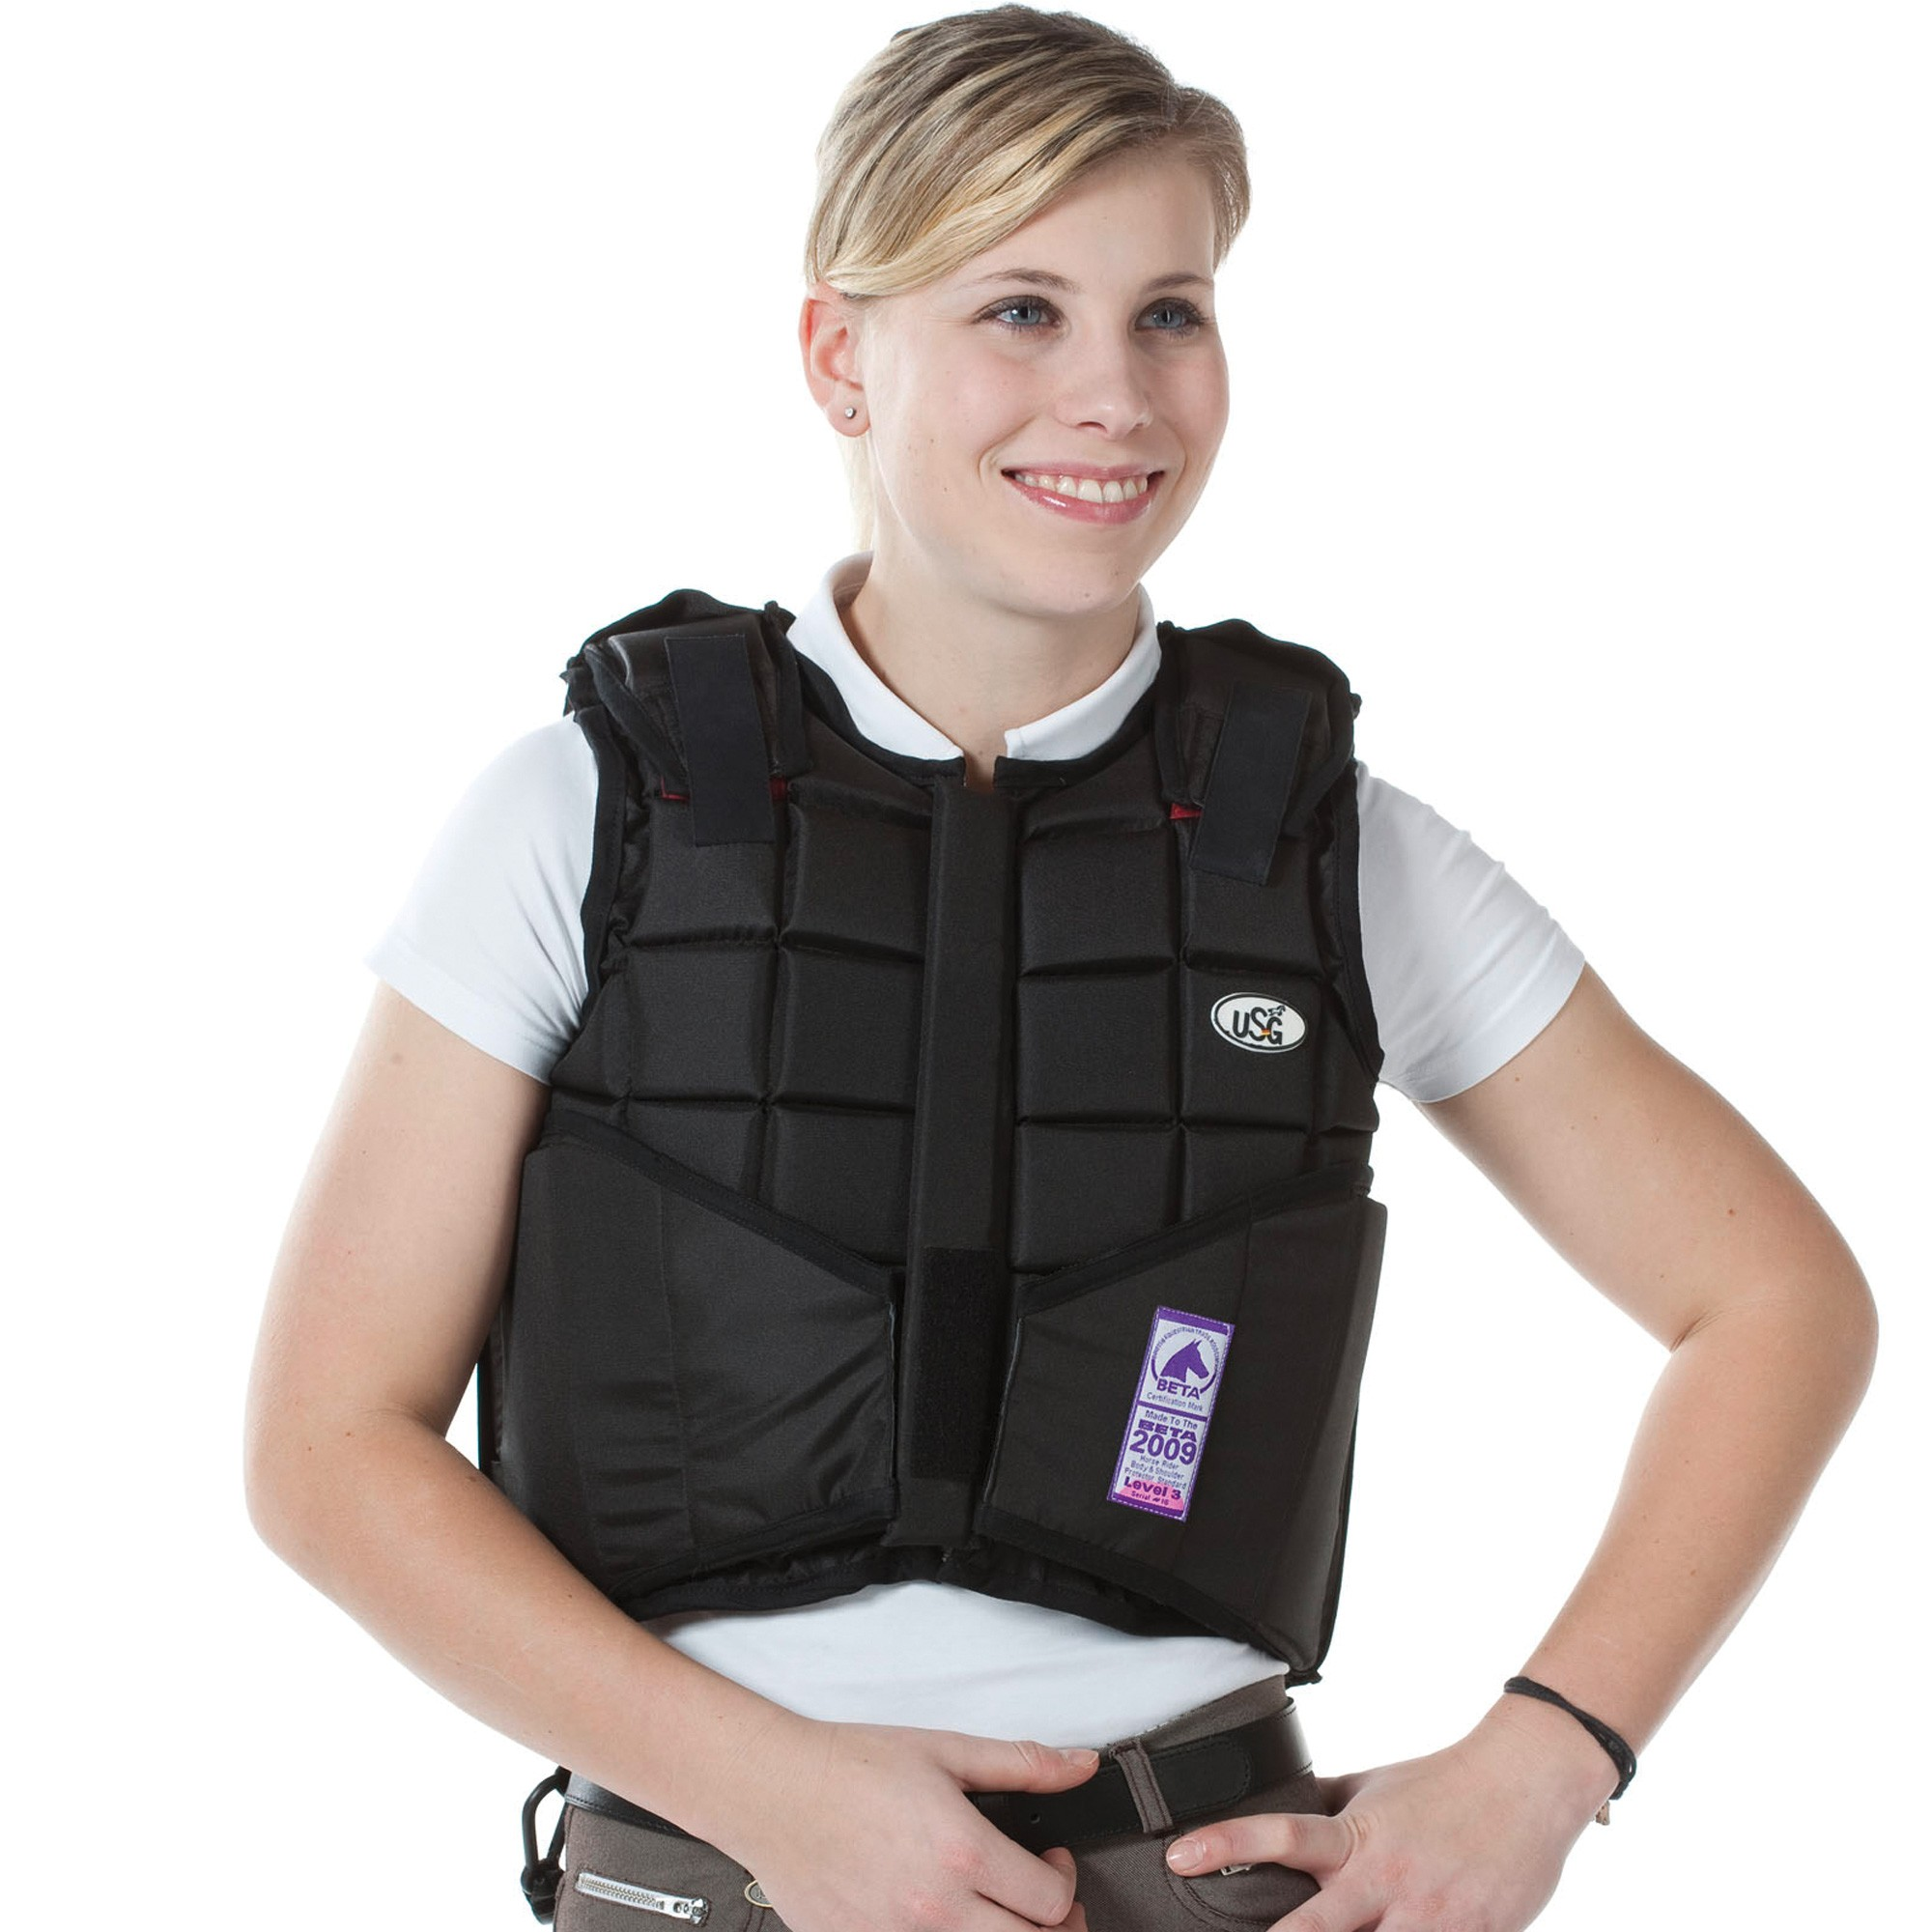 USG Flexi Body Protector